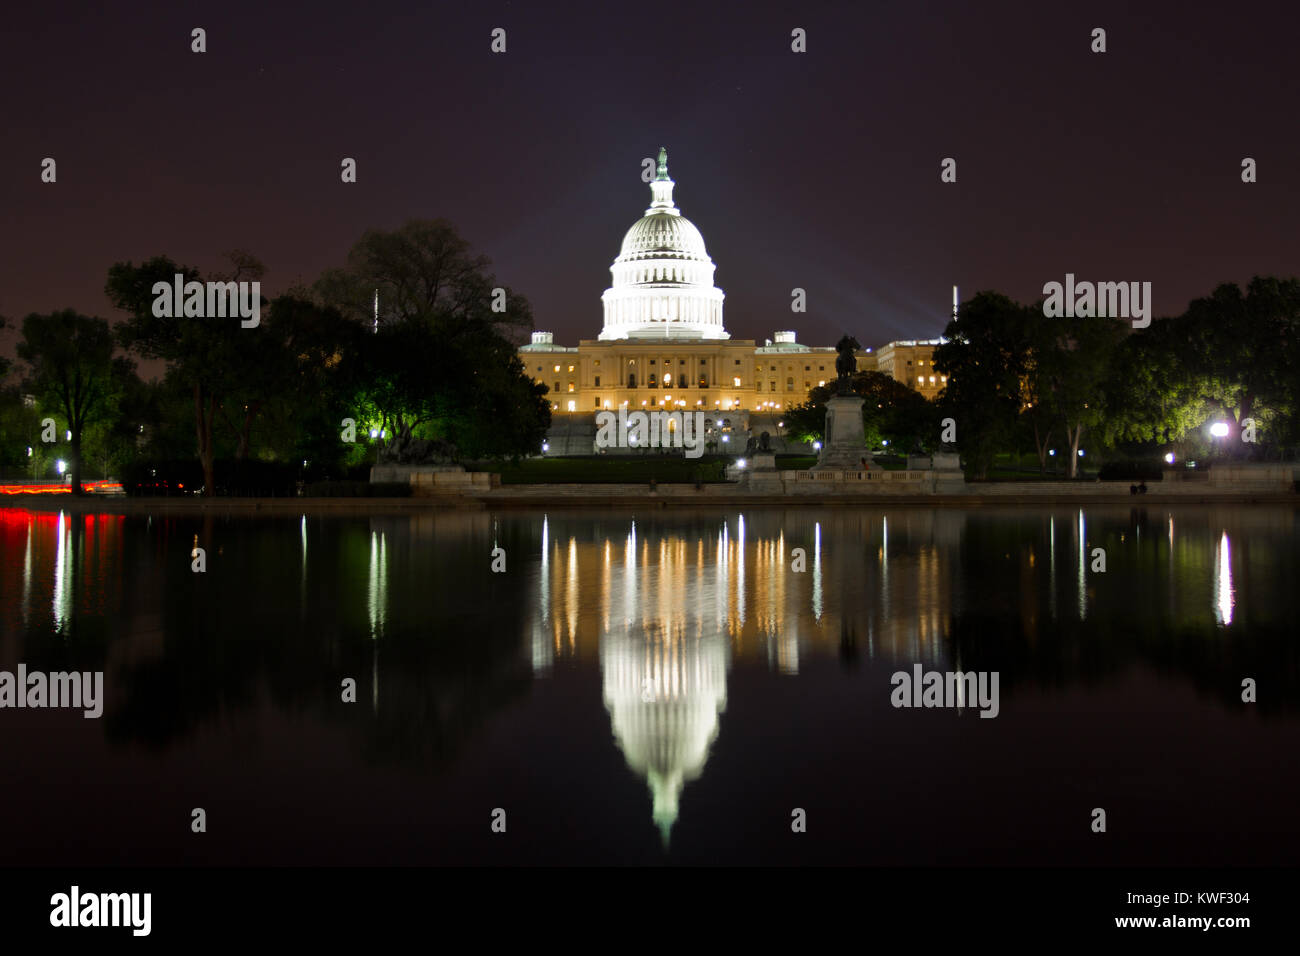 United States Capitol Building, Washington DC, is the home of the US Congress, and the seat of the legislative branch - Stock Image